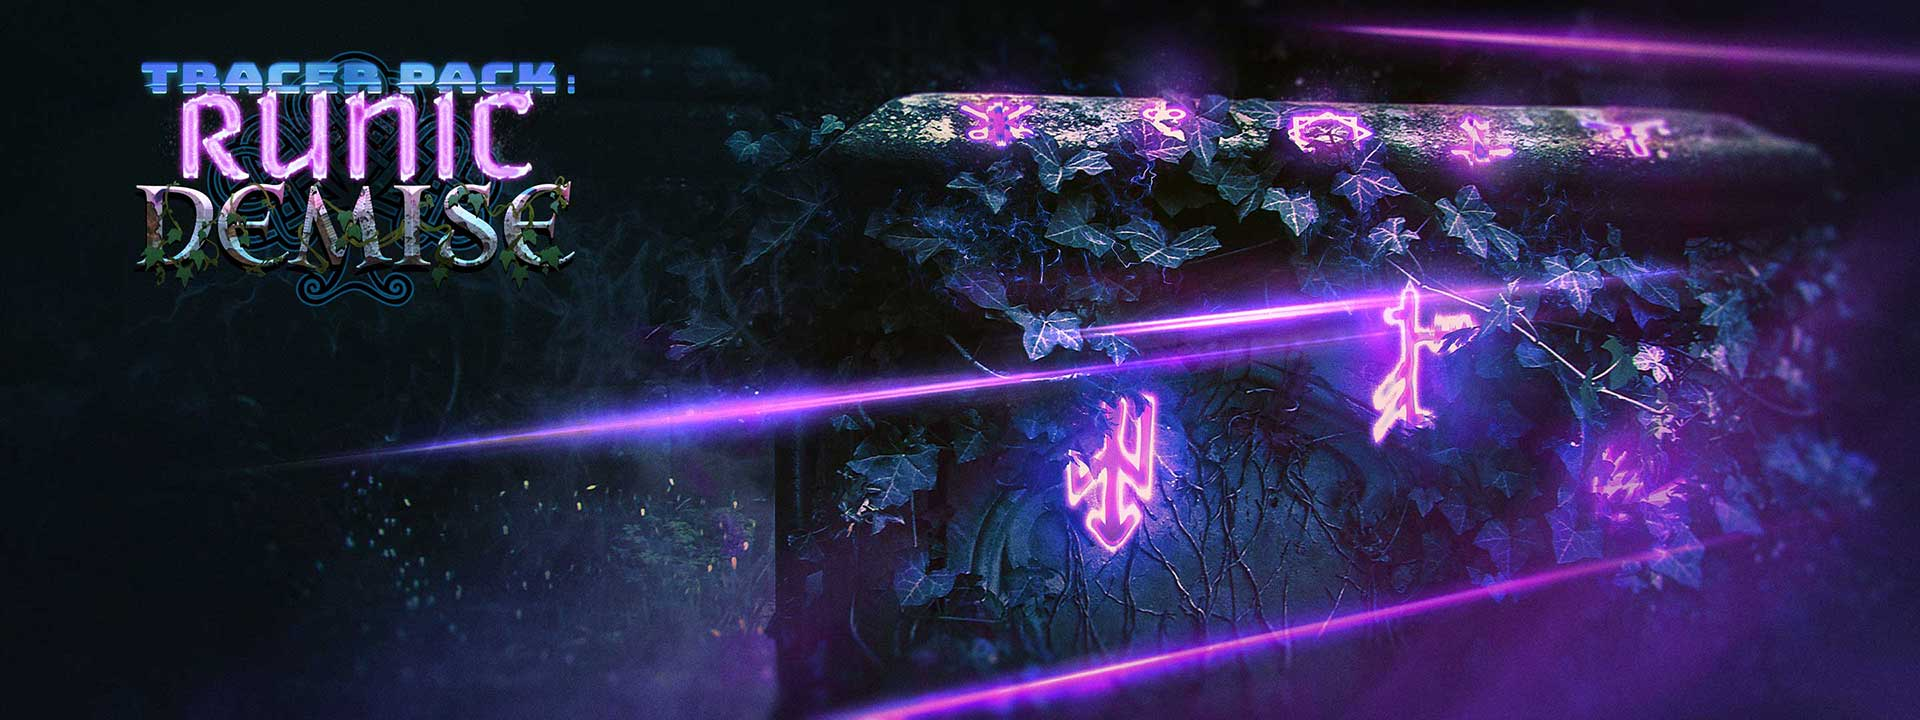 Glowing runes engraved on a large stone slate that is wrapped in vines